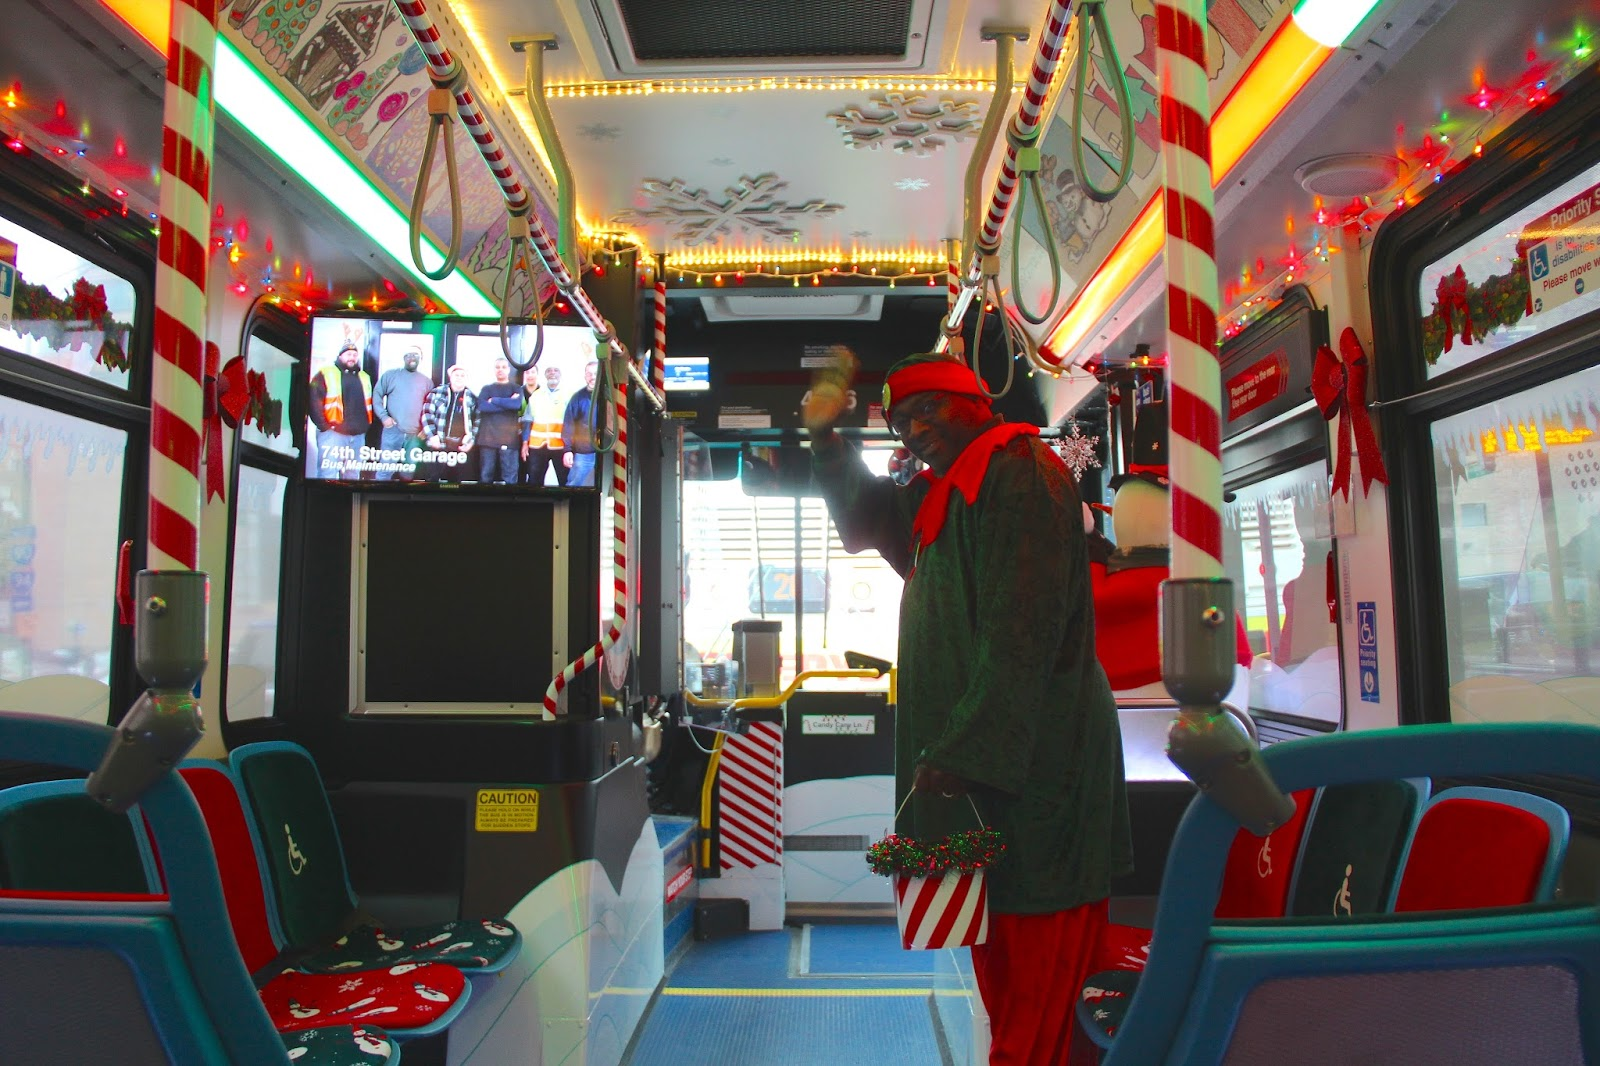 in the very back of the bus is santa and his workshop which serves as the perfect setting for the scheduled photo sessions with santa